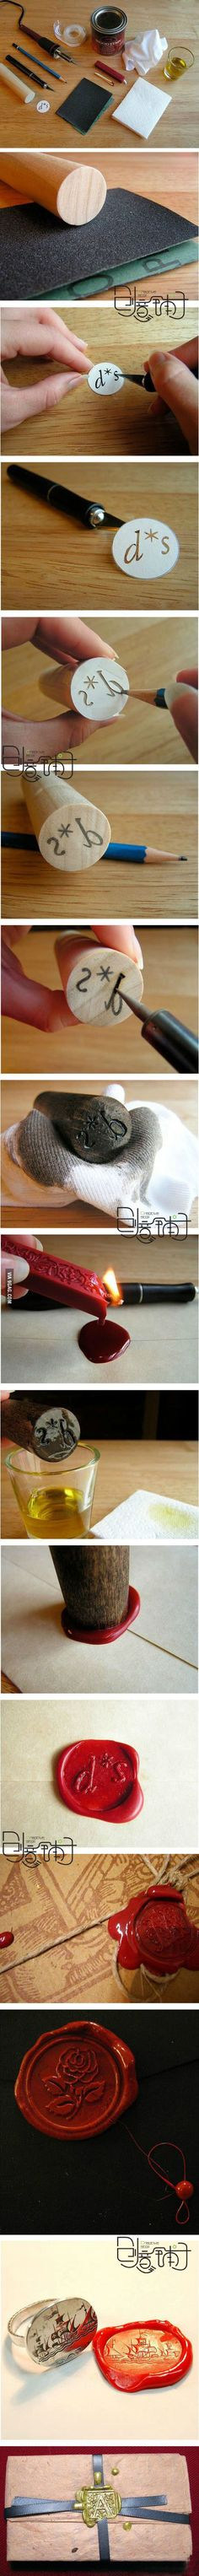 How to make your own wax seal